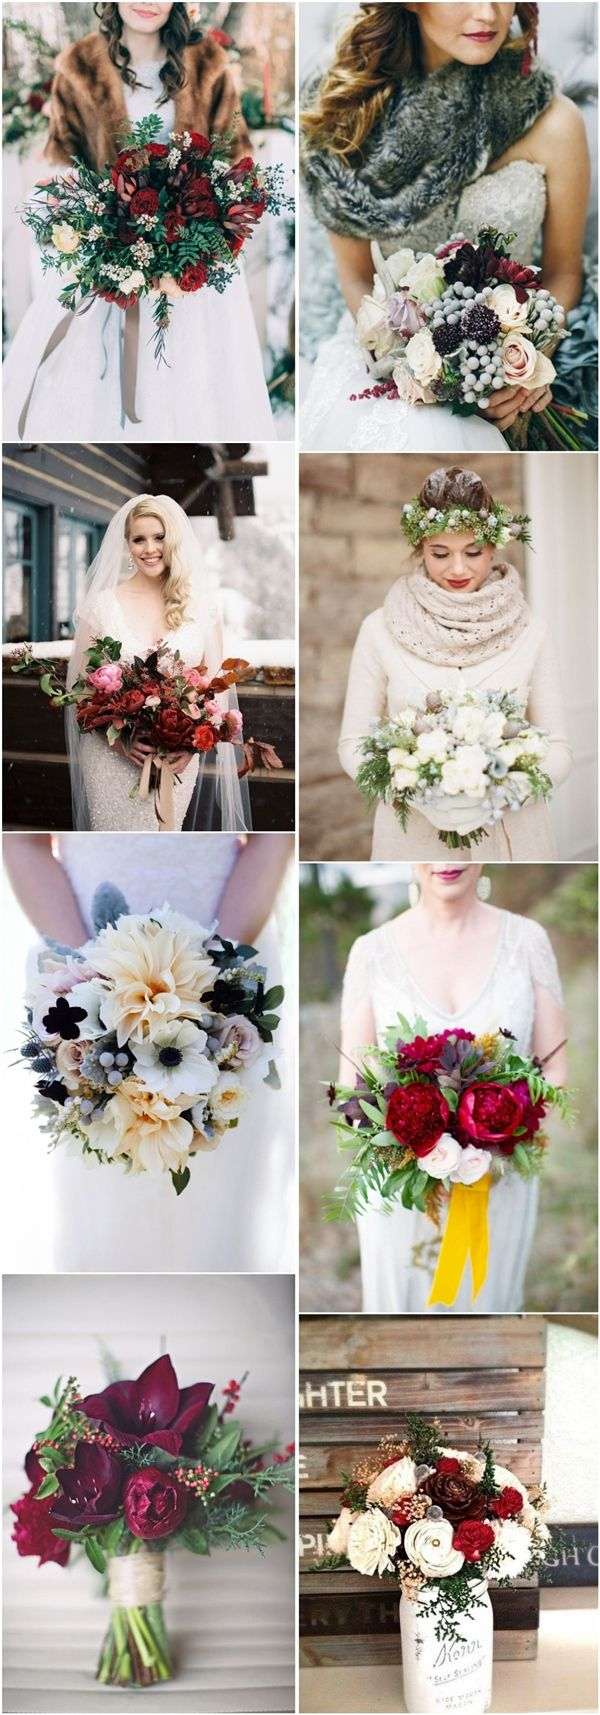 35 Amazing Winter Wedding Bouquets You'll Love | http://www.deerpearlflowers.com/35-amazing-winter-wedding-bouquets-youll-love/